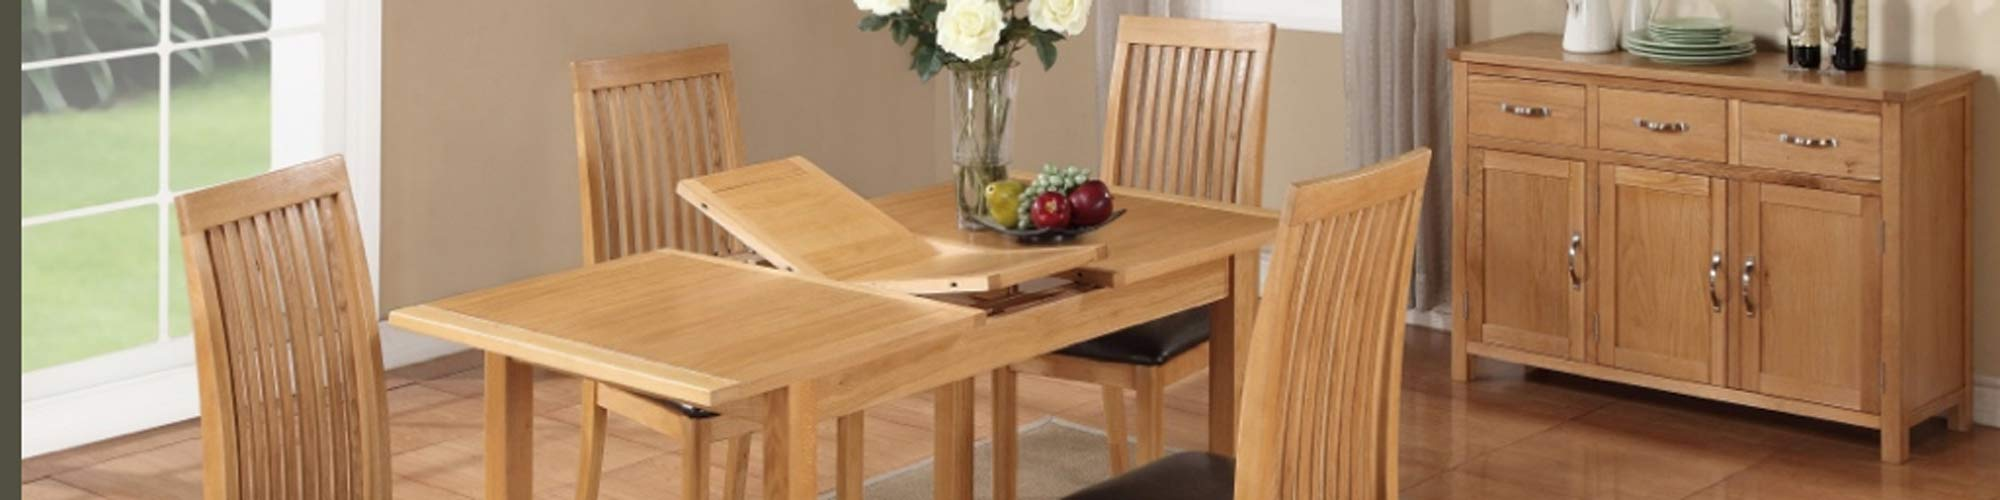 cwmbran-pine-oak-harford-oak-slider